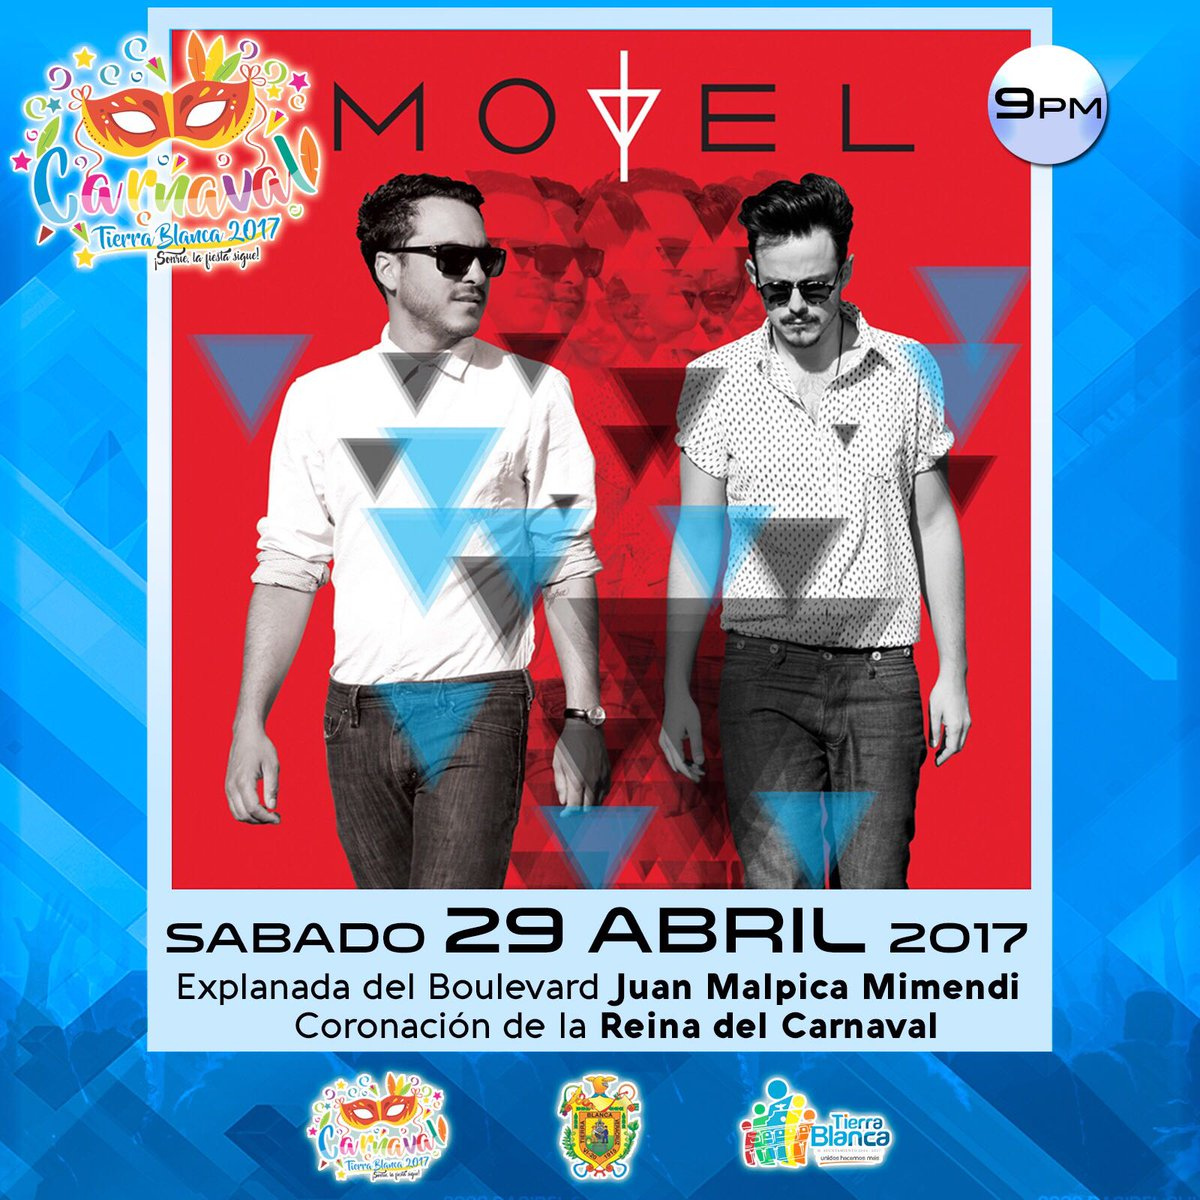 Notice: Undefined variable: ¡Nos vemos en Veracruz el 29 de Abril! #Carnaval2017 #TierraBlanca https://t.co/lu6pktRuY7 in /hsphere/local/home/motelmxf/motelmx.com/wp-content/themes/motel/external/motel-utilities.php on line 157